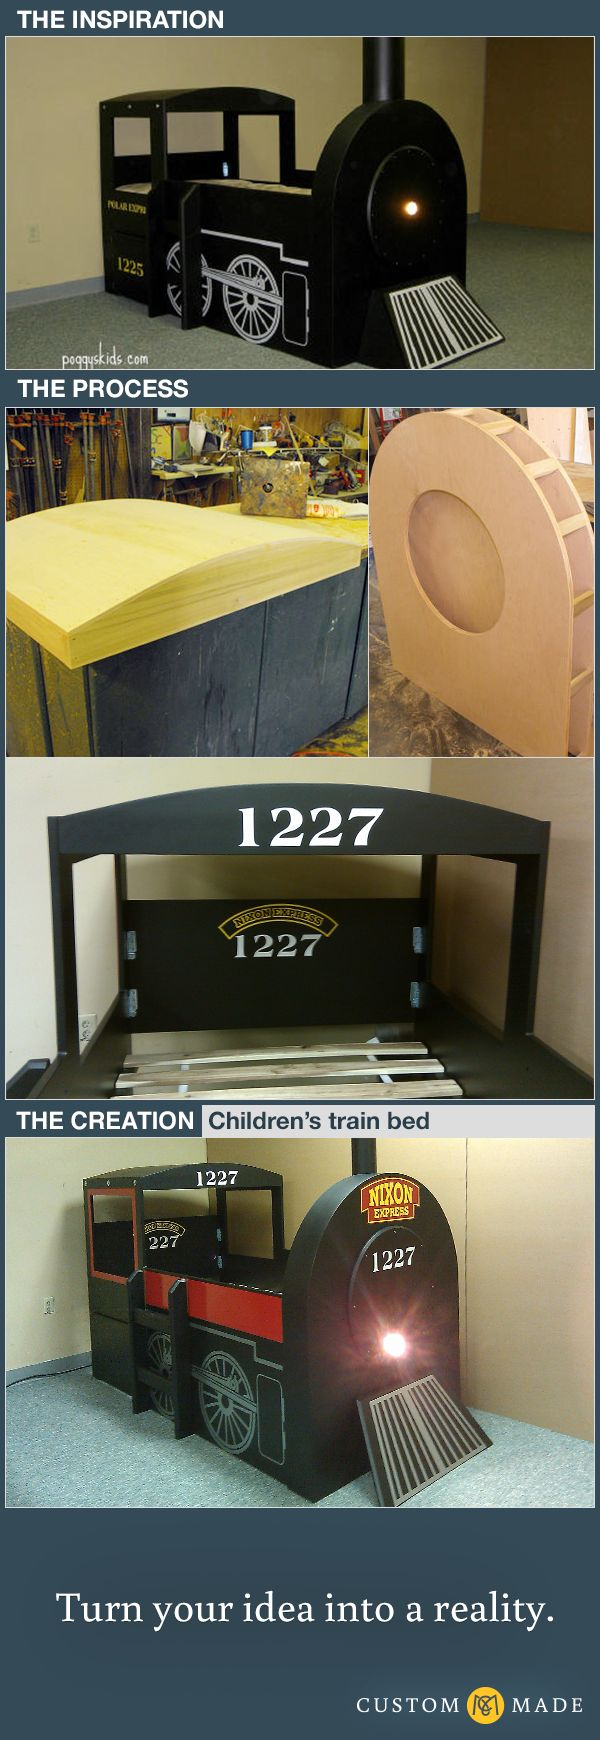 Children's train bed modeled after the Hogwarts Express | CustomMade